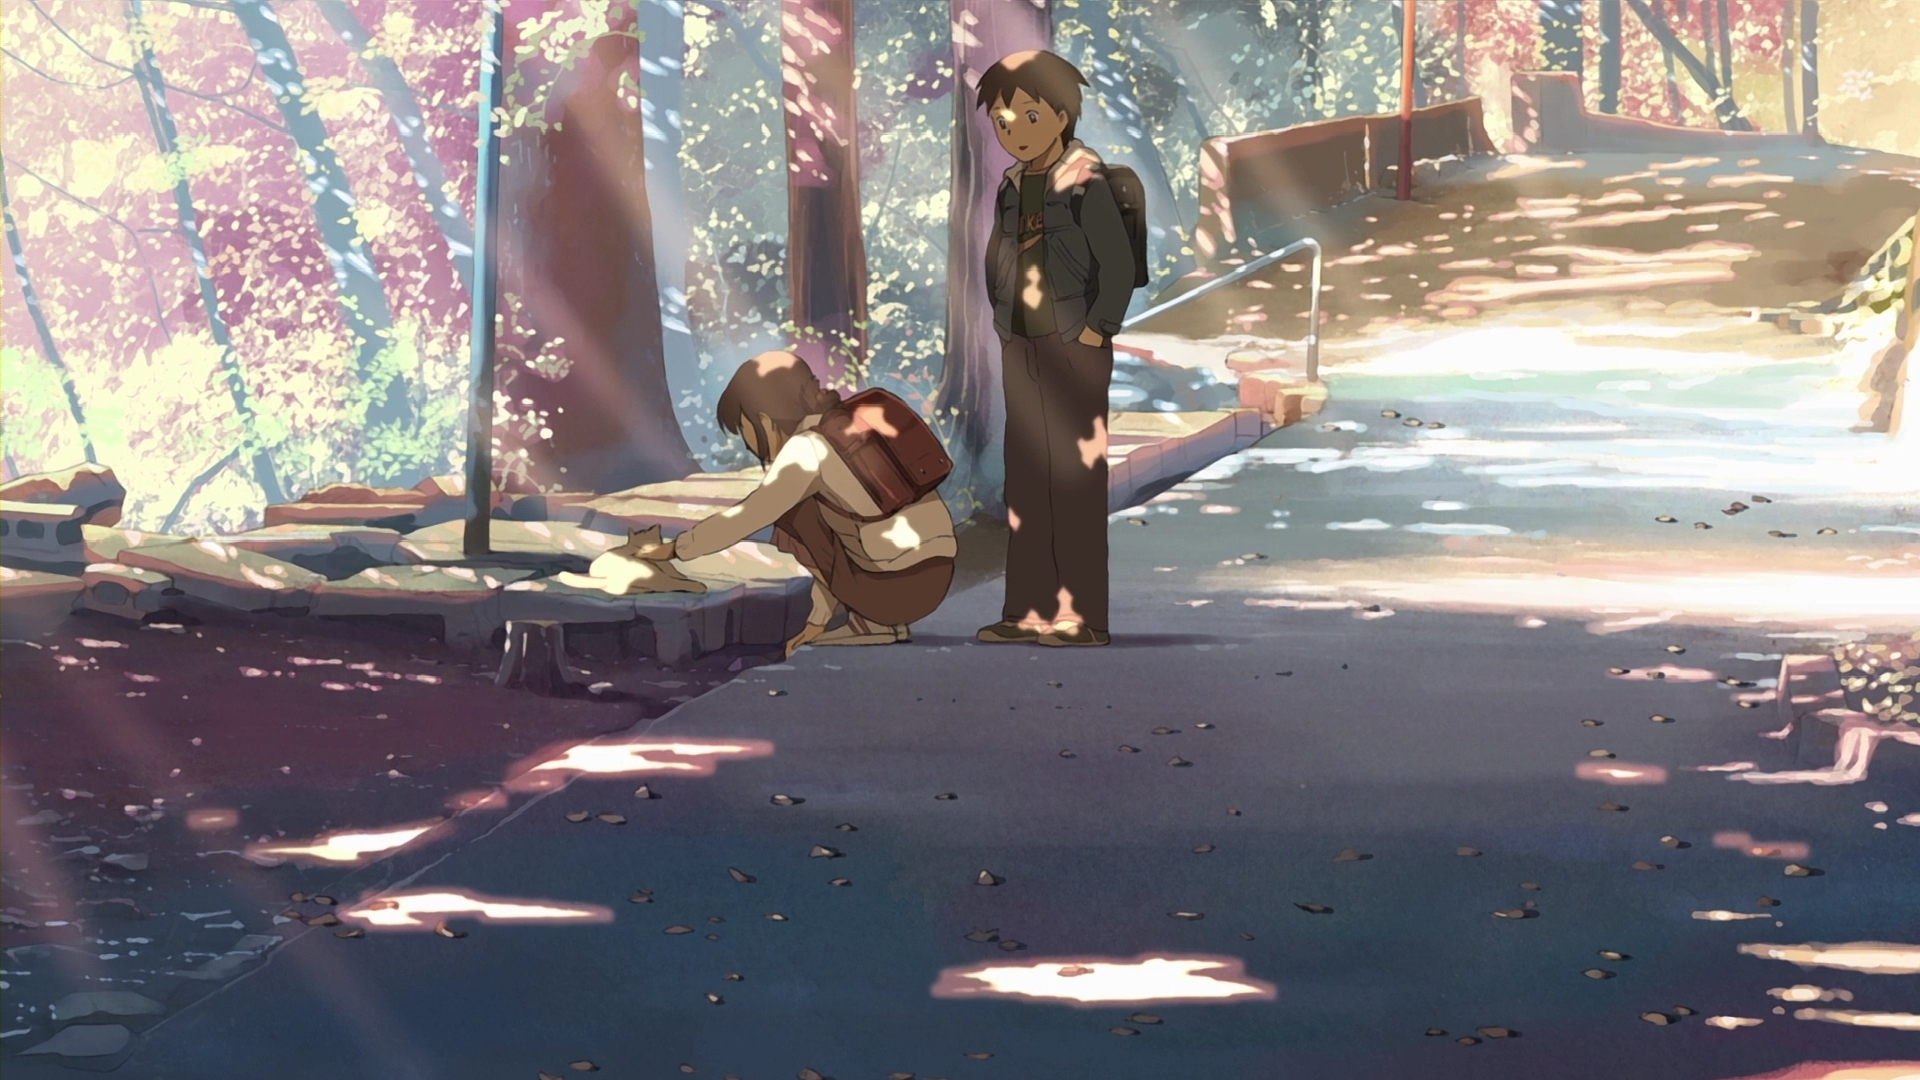 5 Centimeters per Second, Wallpaper